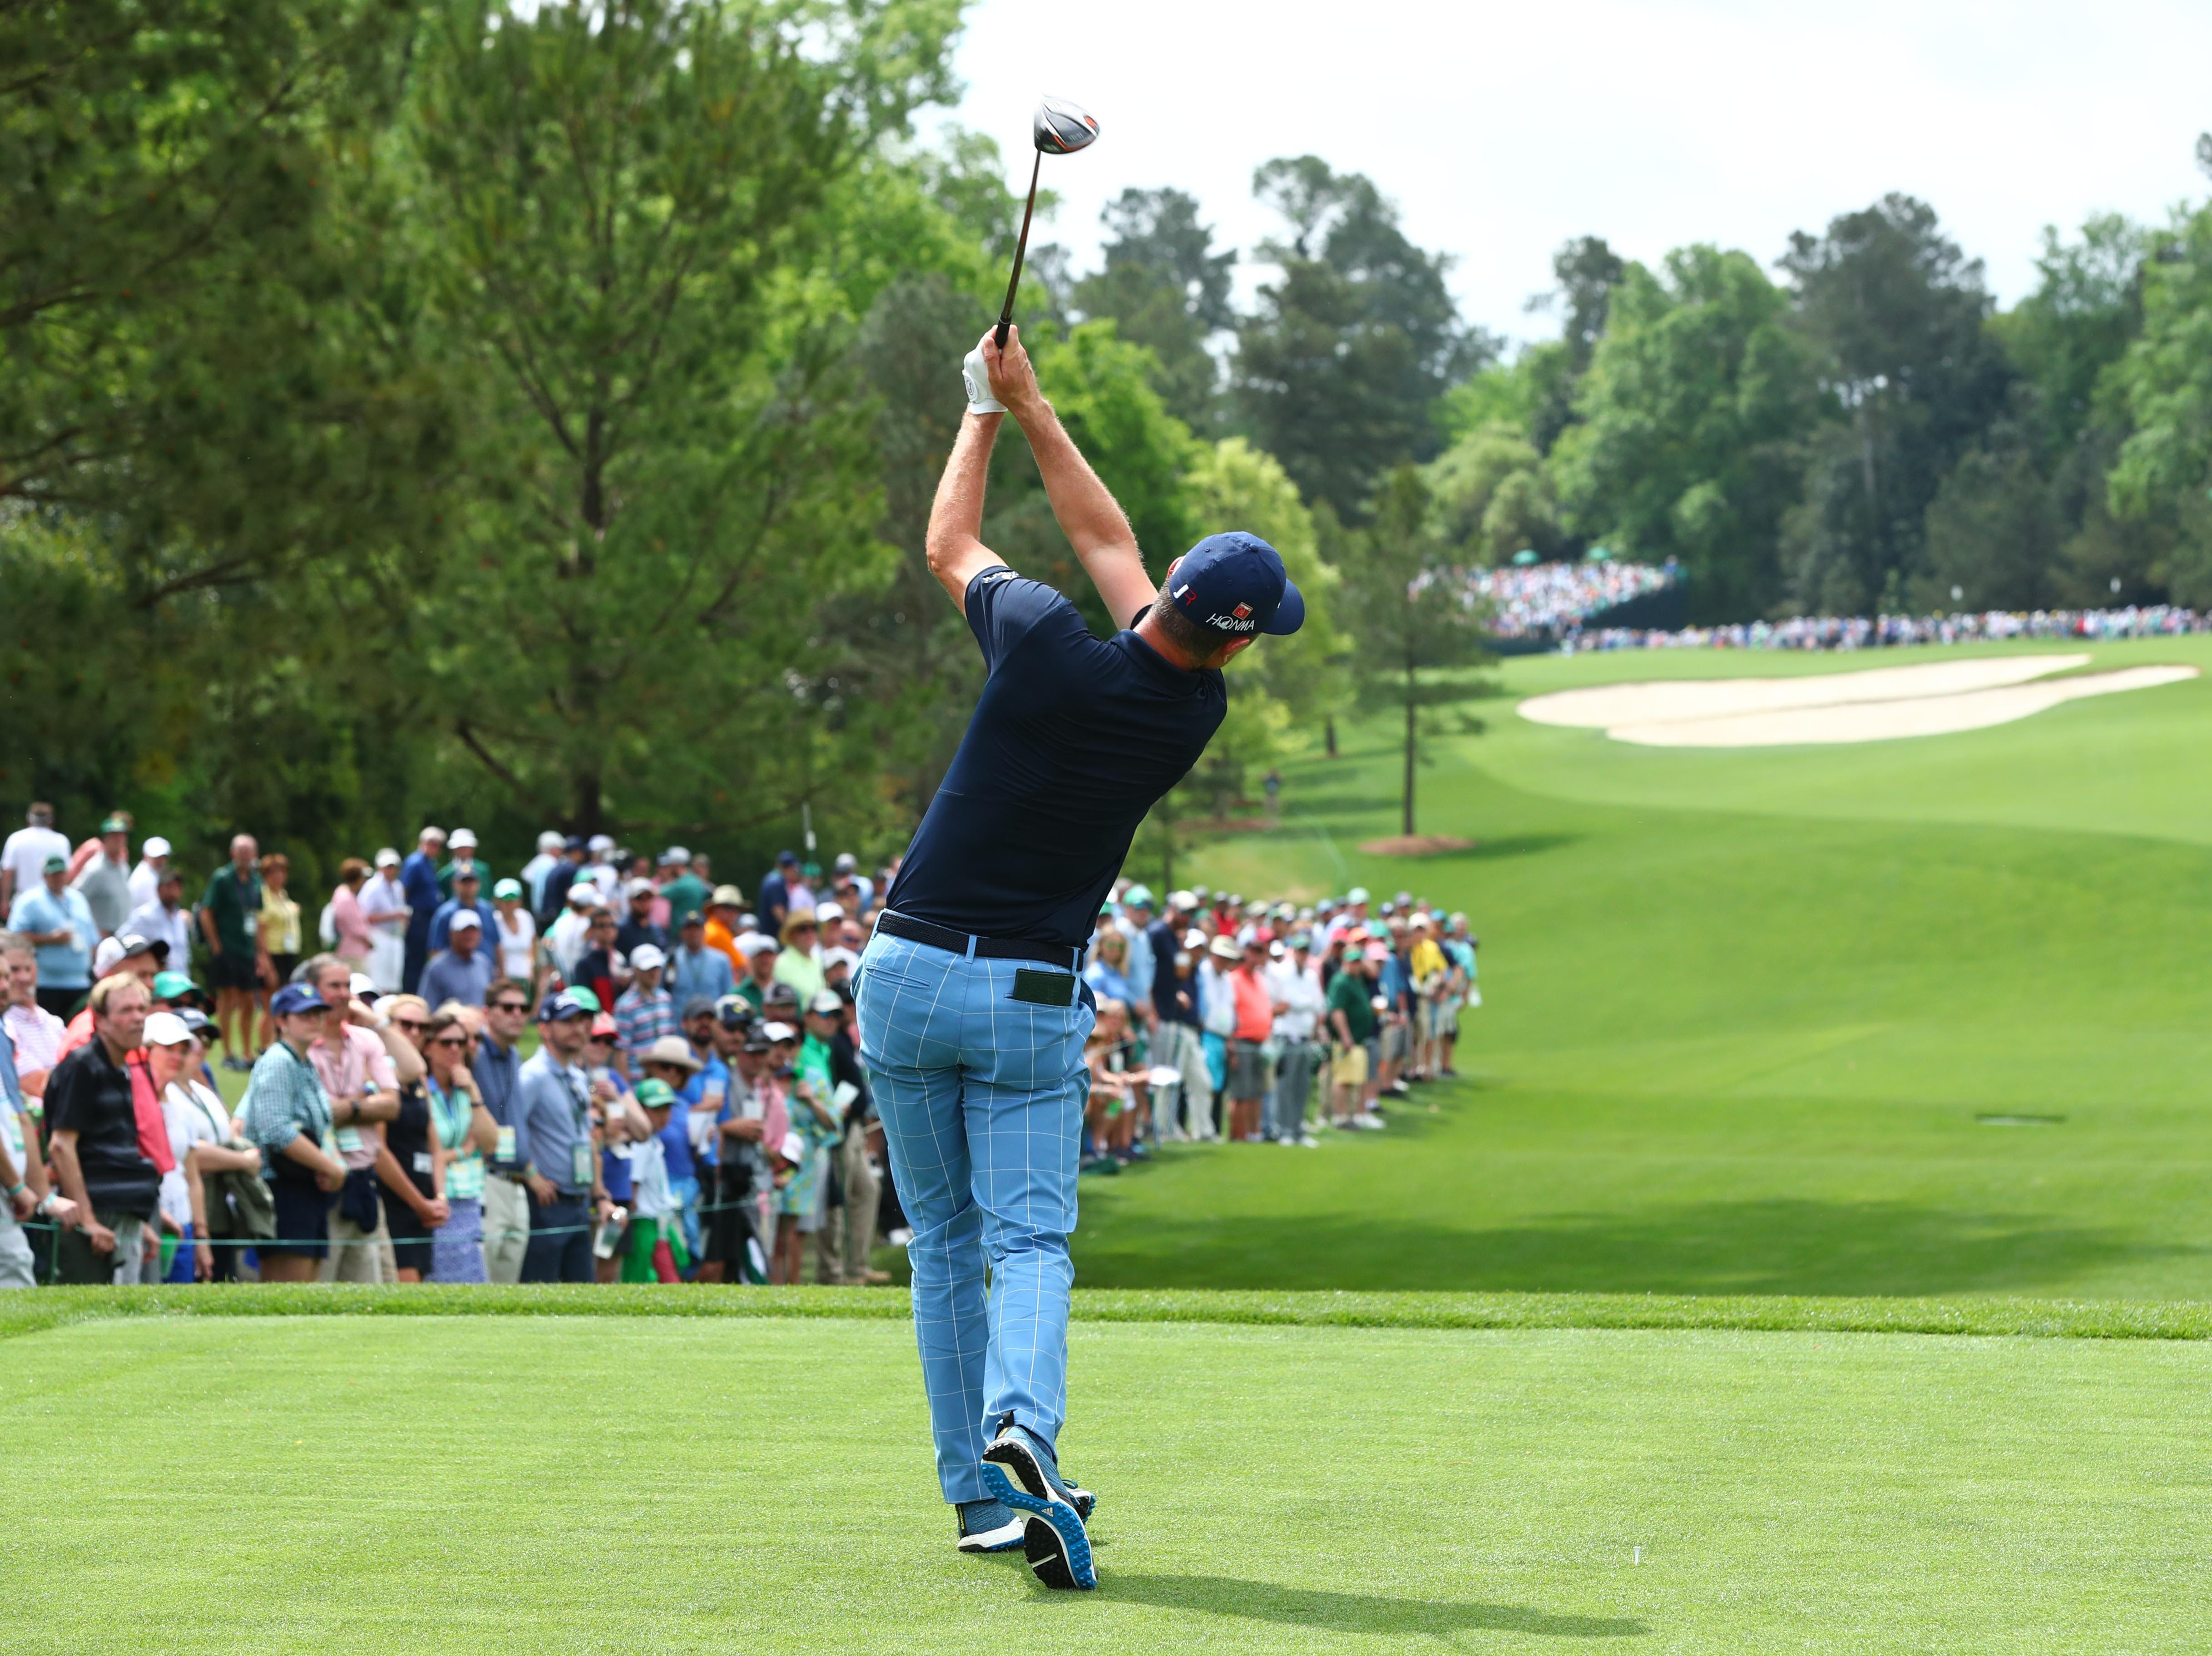 Apr 12, 2019; Augusta, GA, USA; Justin Rose hits his tee shot on the 5th hole during the second round of The Masters golf tournament at Augusta National Golf Club. Mandatory Credit: Rob Schumacher-USA TODAY Sports